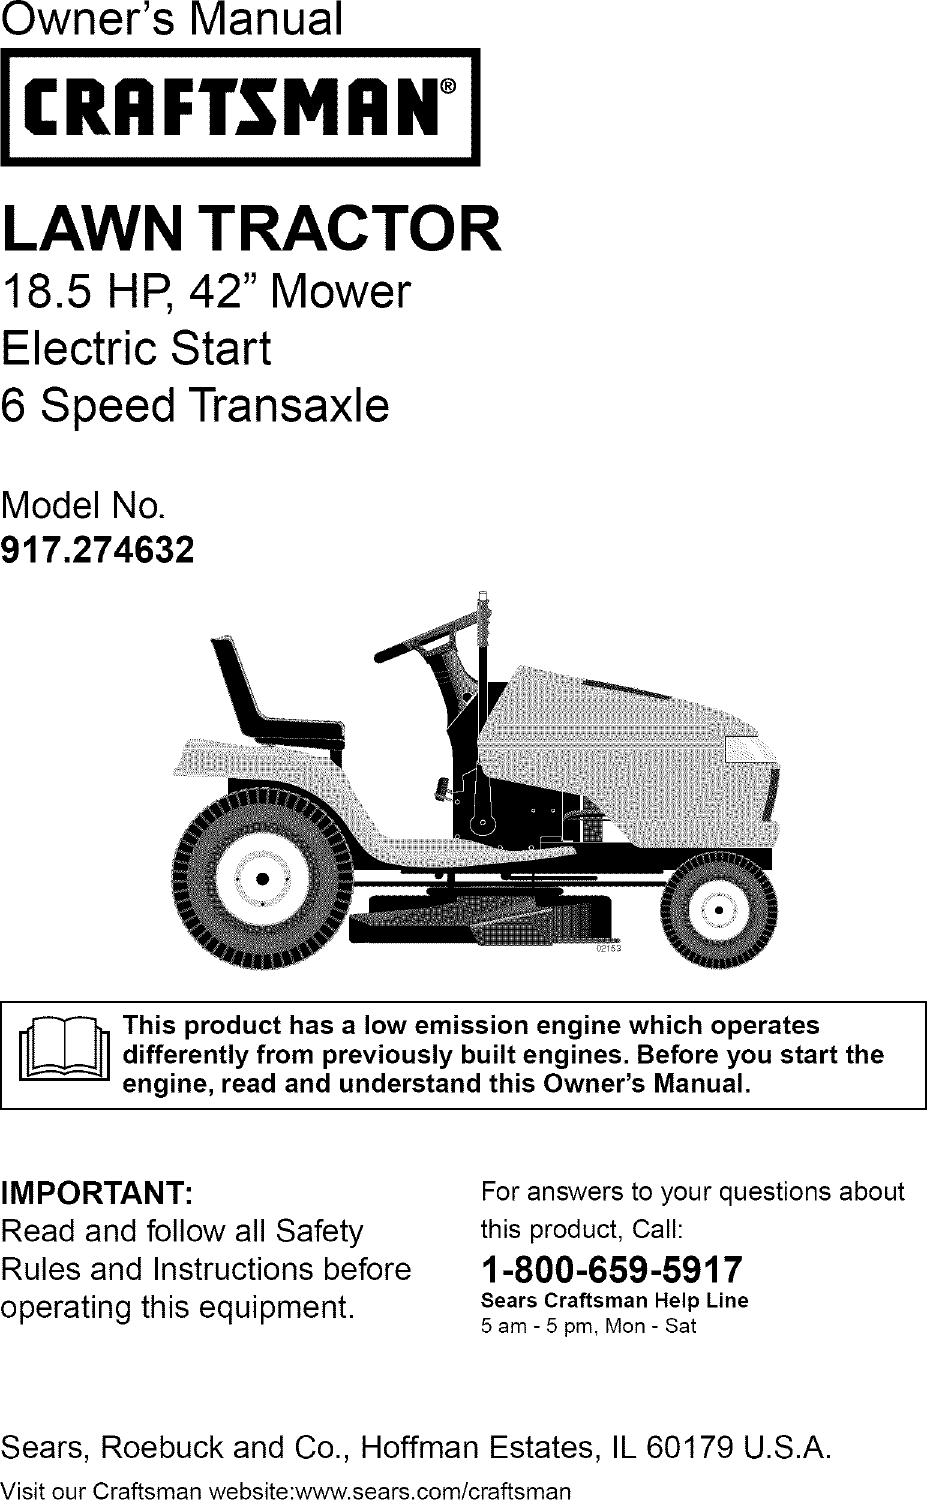 Craftsman 917274632 User Manual Lawn Tractor Manuals And Guides L0409678 Transmission Drive Belt Mower Electric Clutch